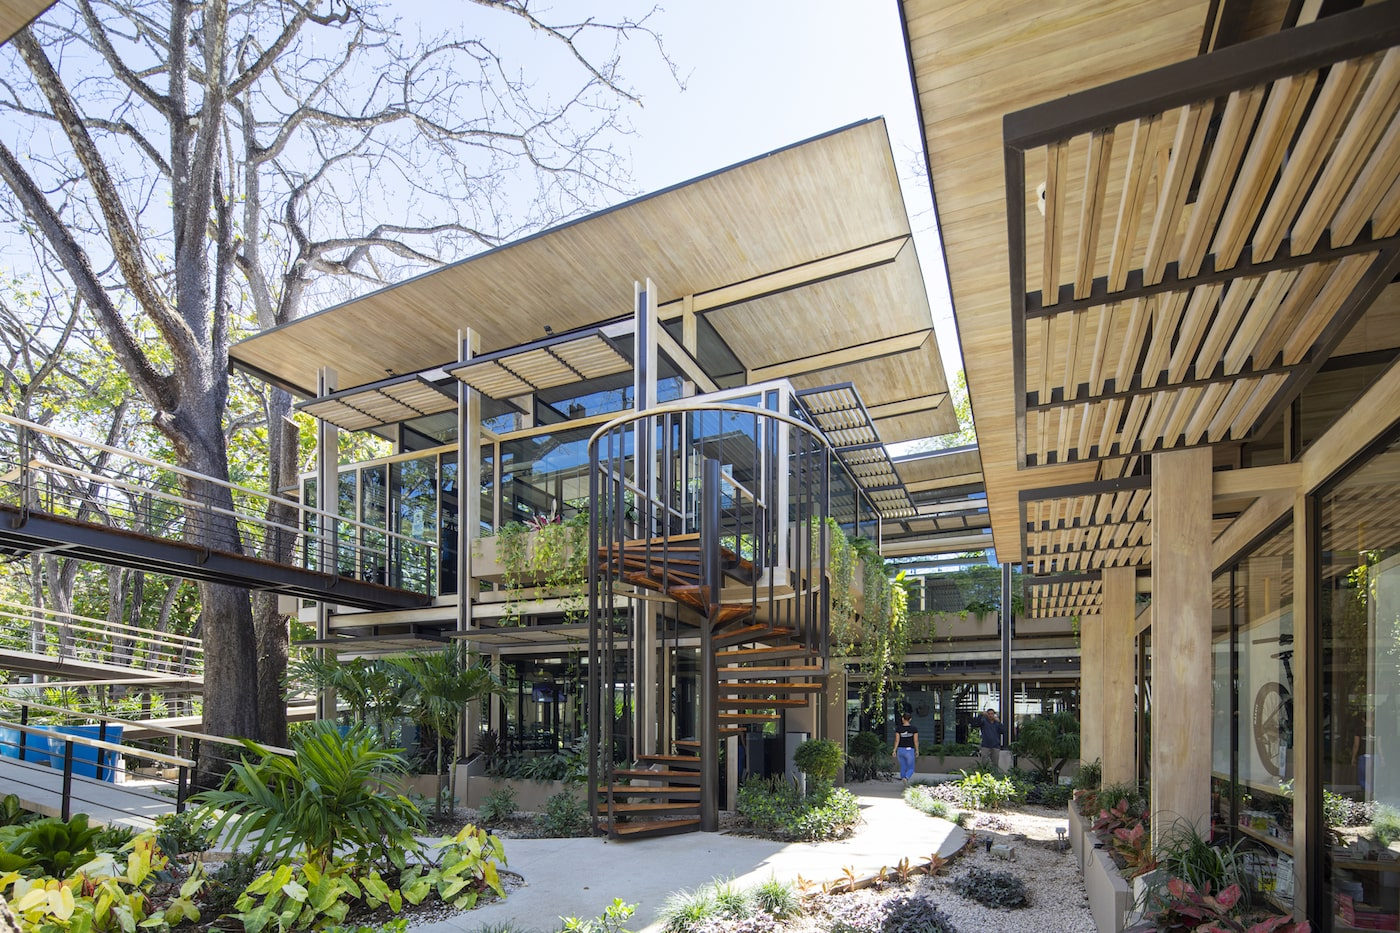 Timber clad building with covered walkways